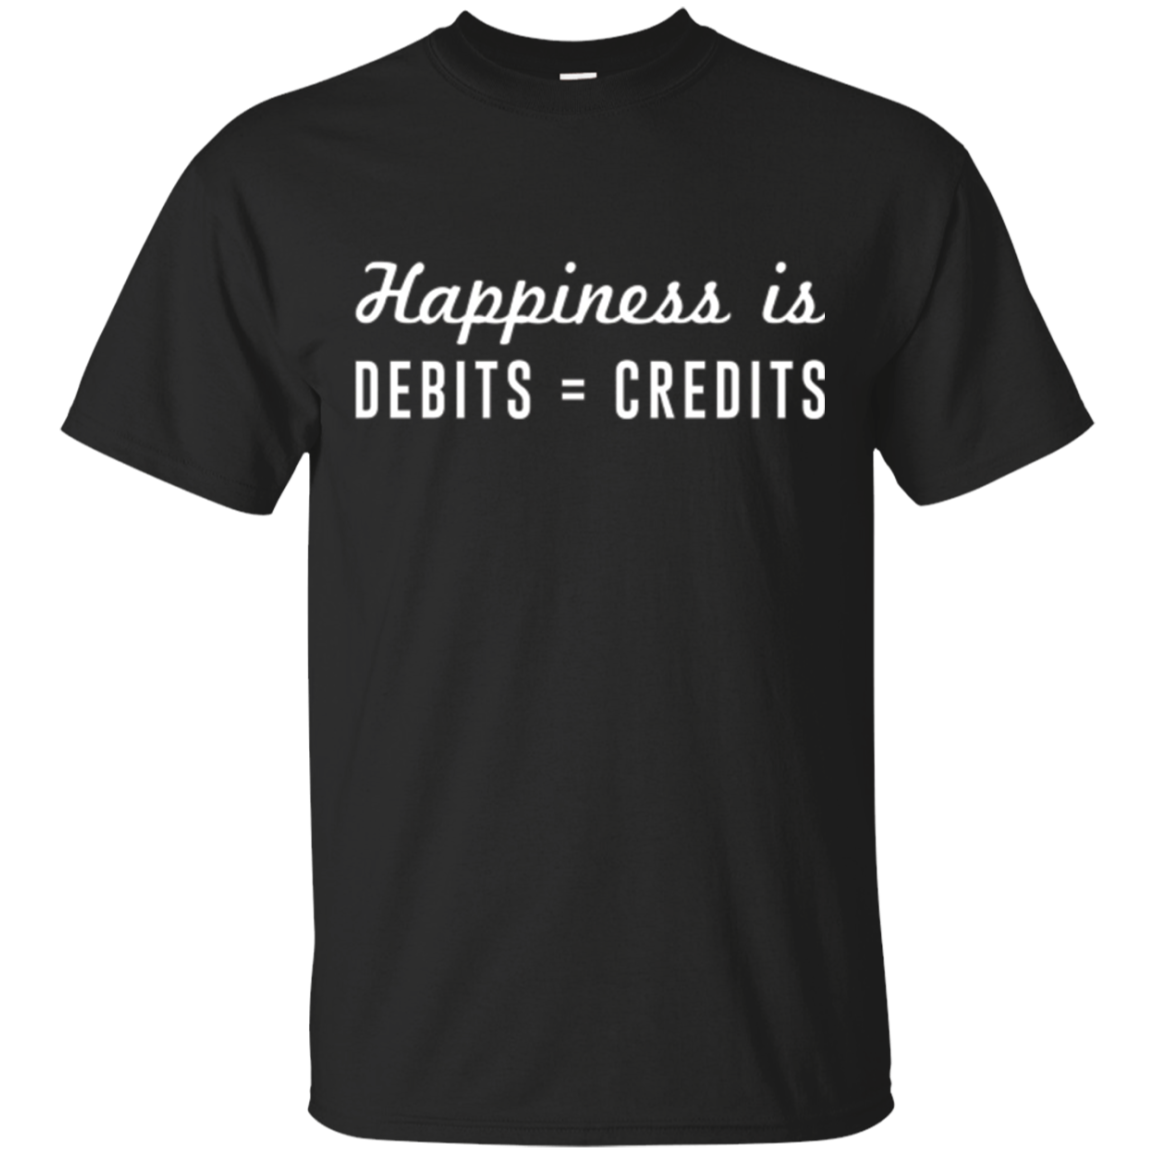 Happiness is Debits = Credits T-Shirt for Accountants